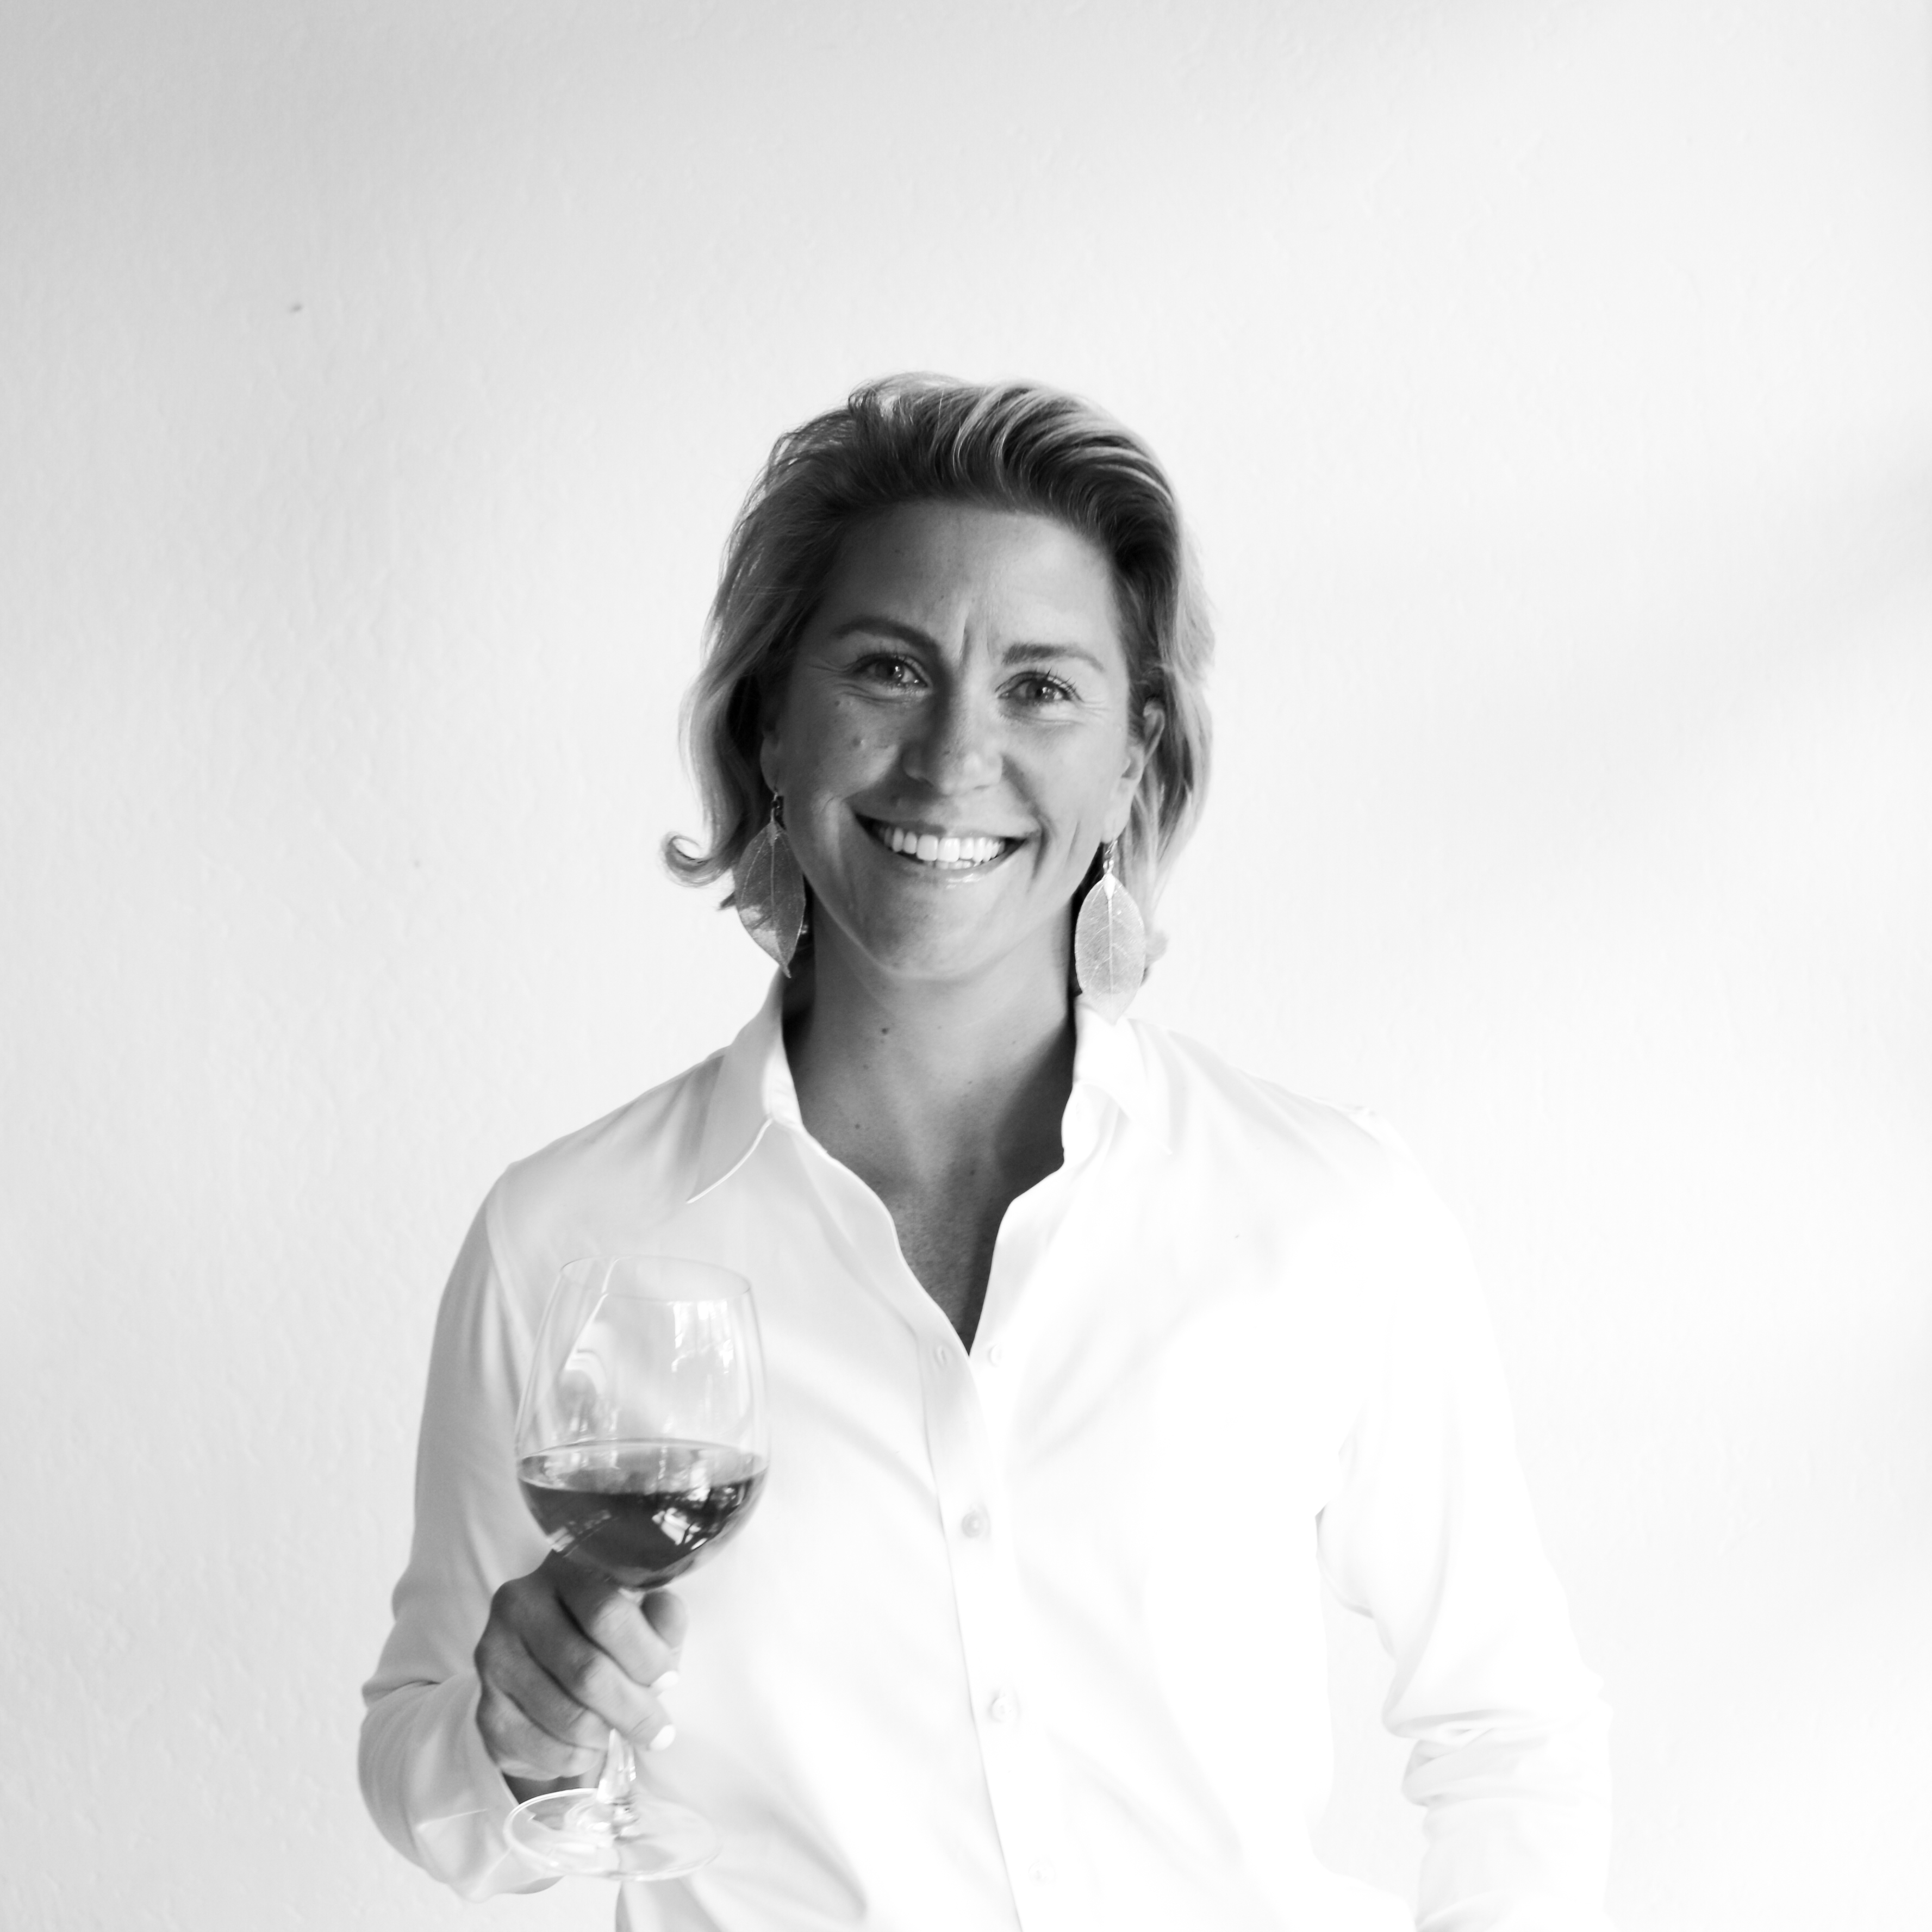 Mary Woodka - Vice President, Business Development & Distribution, Free Flow Wines